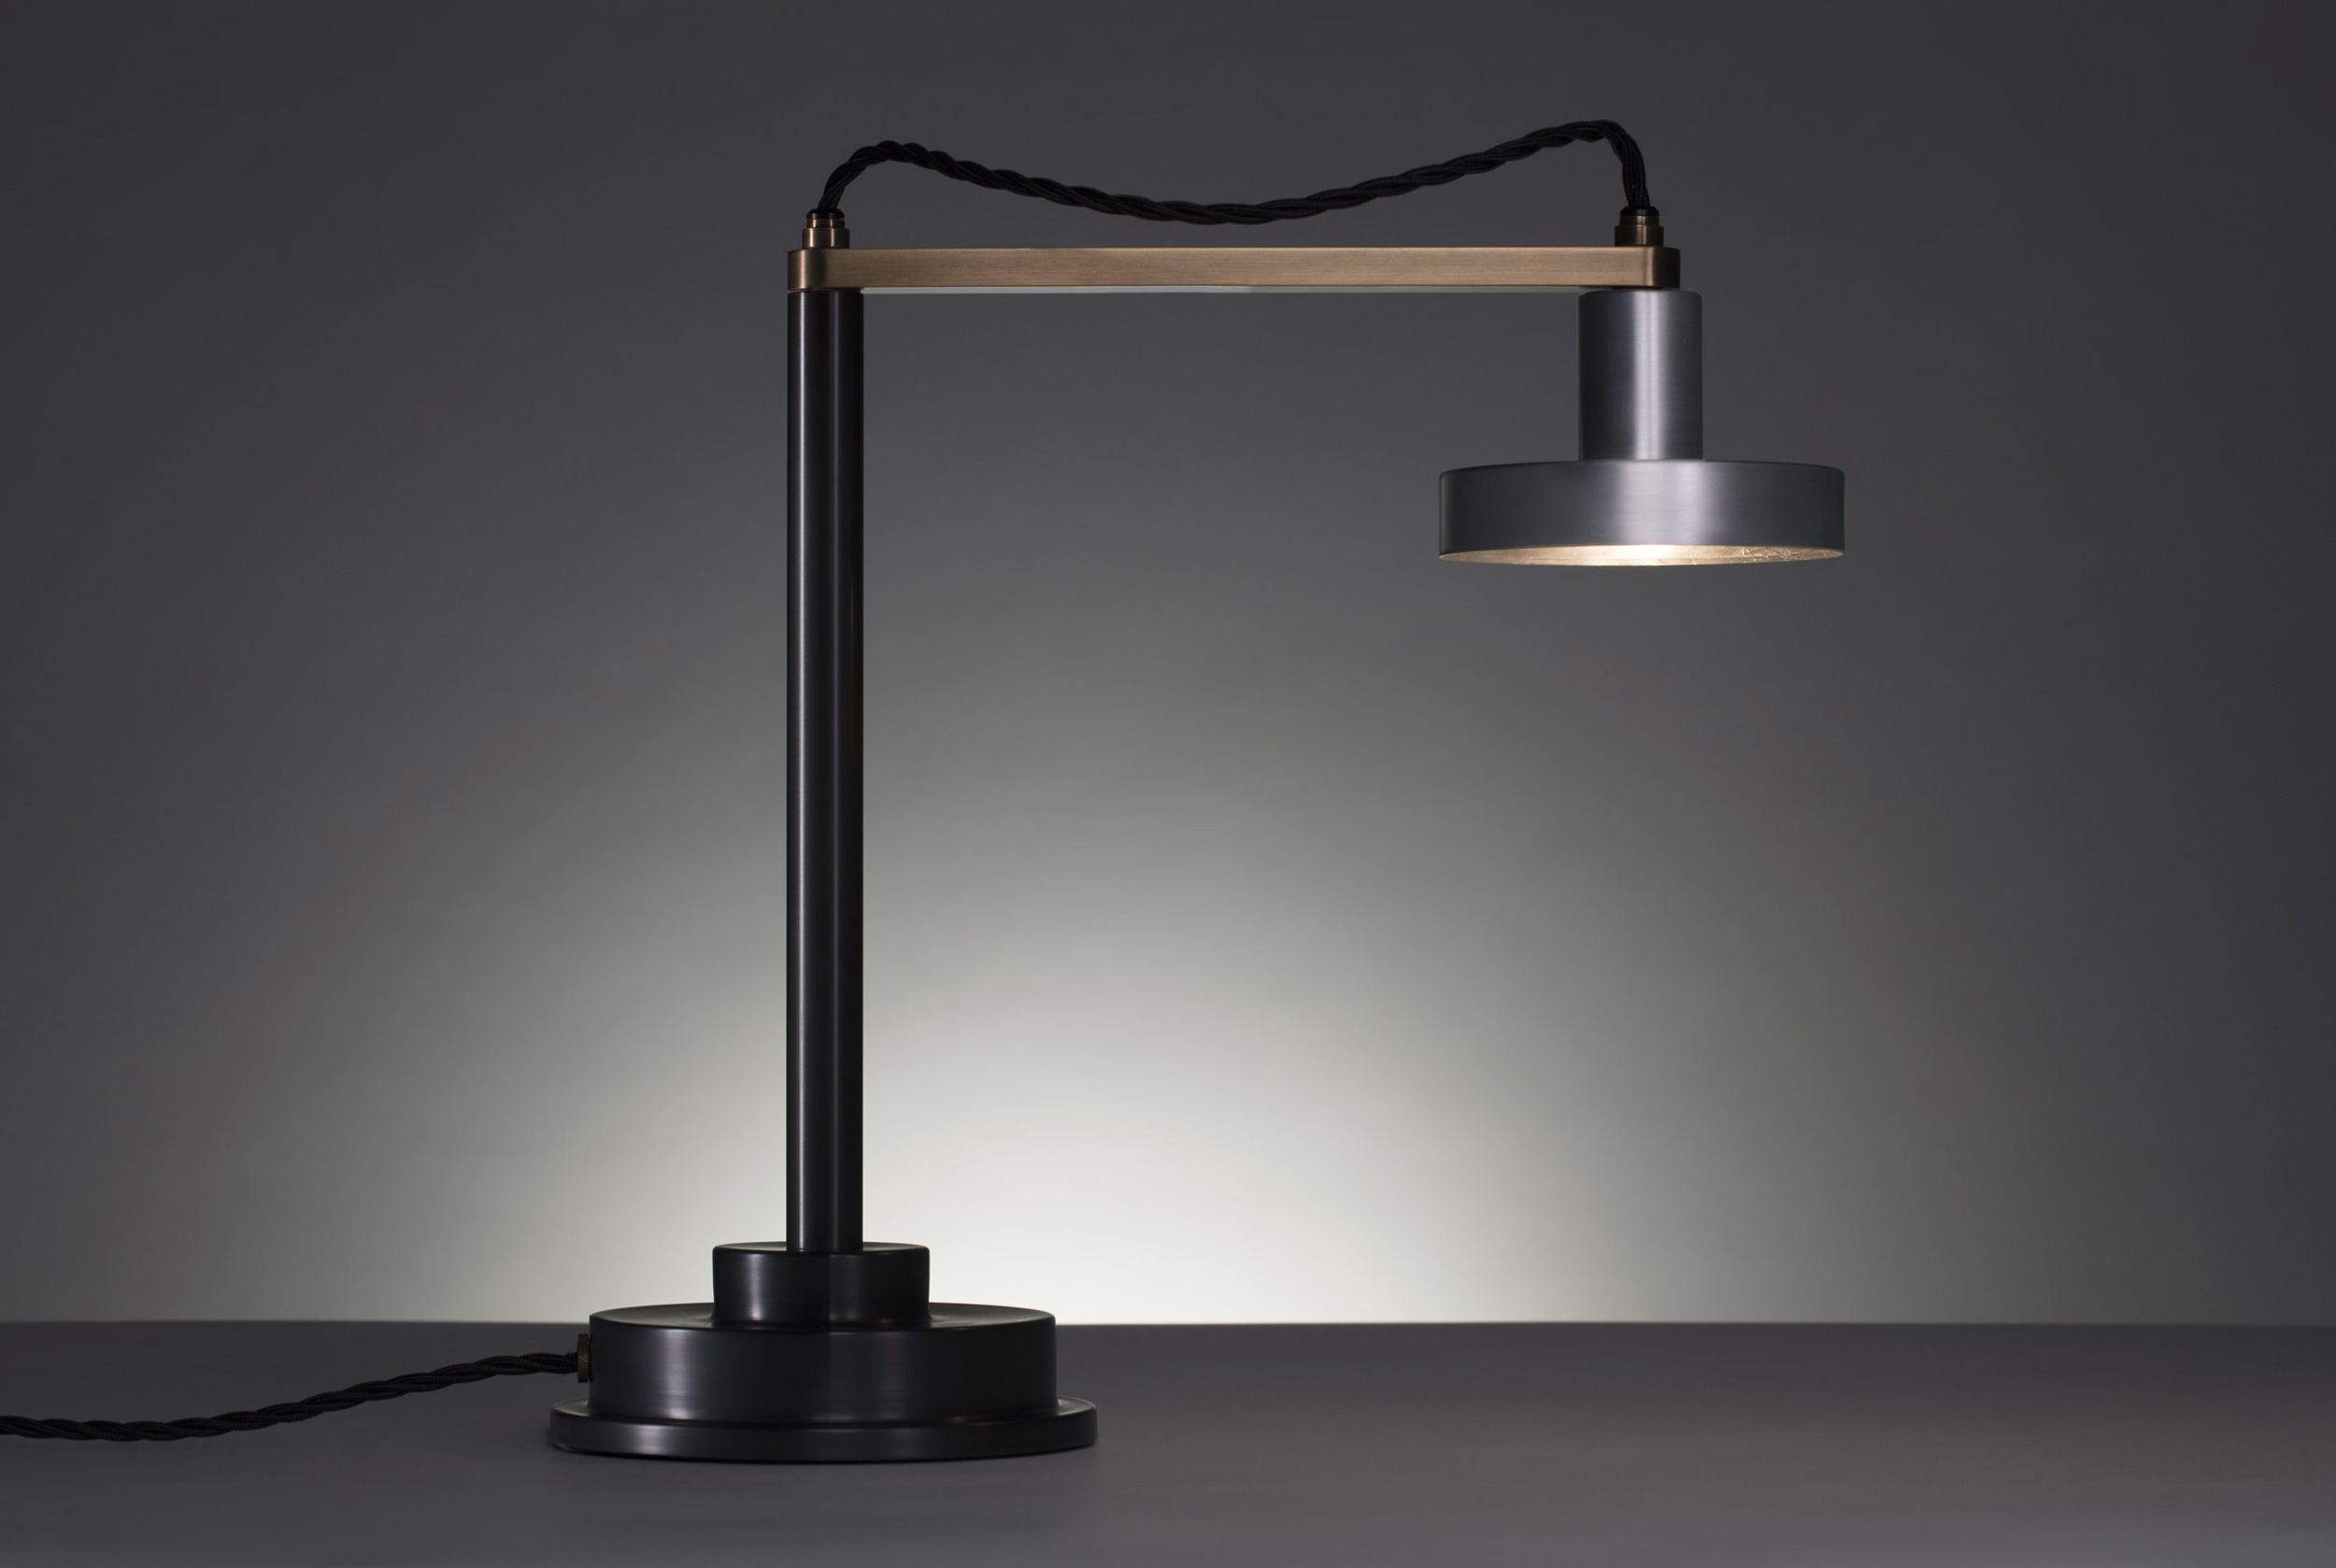 APD Argosy Product Division Delta Lamp  Modern Industrial Product Design for Contemporary Interior Design Clean Geometry Simplicity with Handmade Craftsmanship